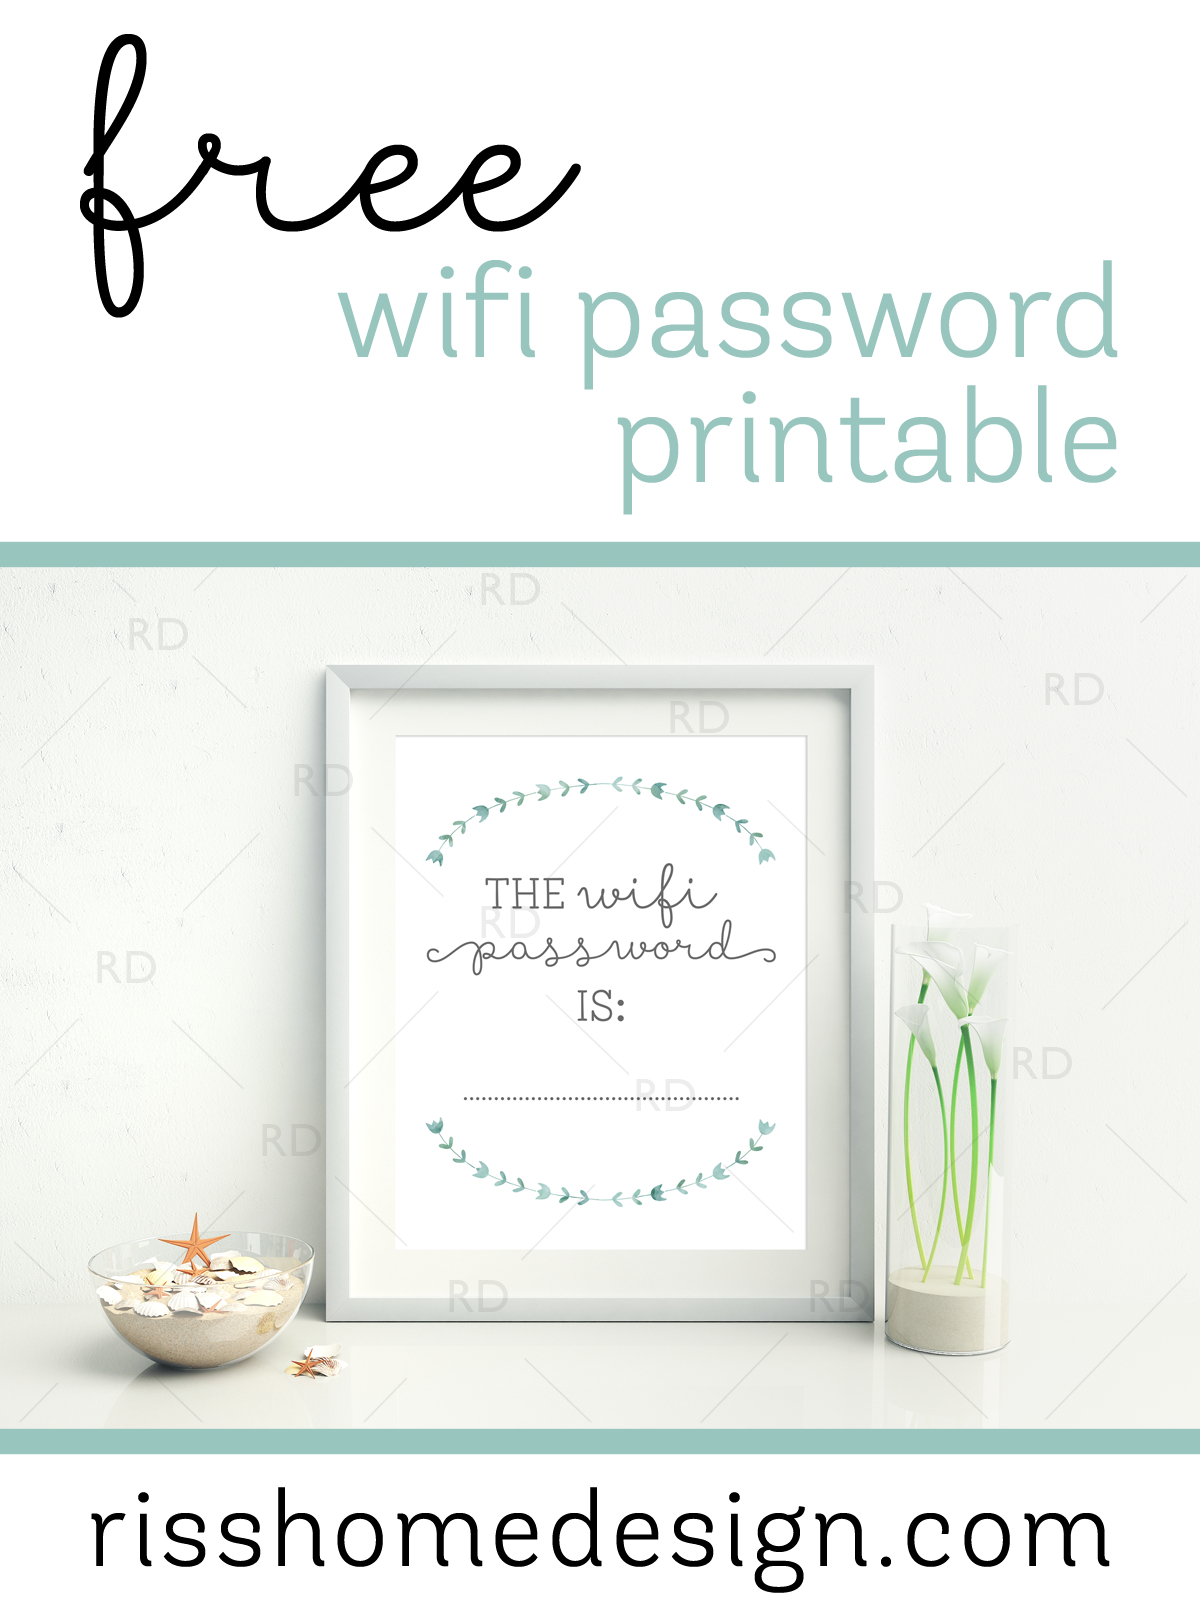 Free Wifi Password Printable For Your Home! Awesome To Display In A - Free Printable Wifi Password Template